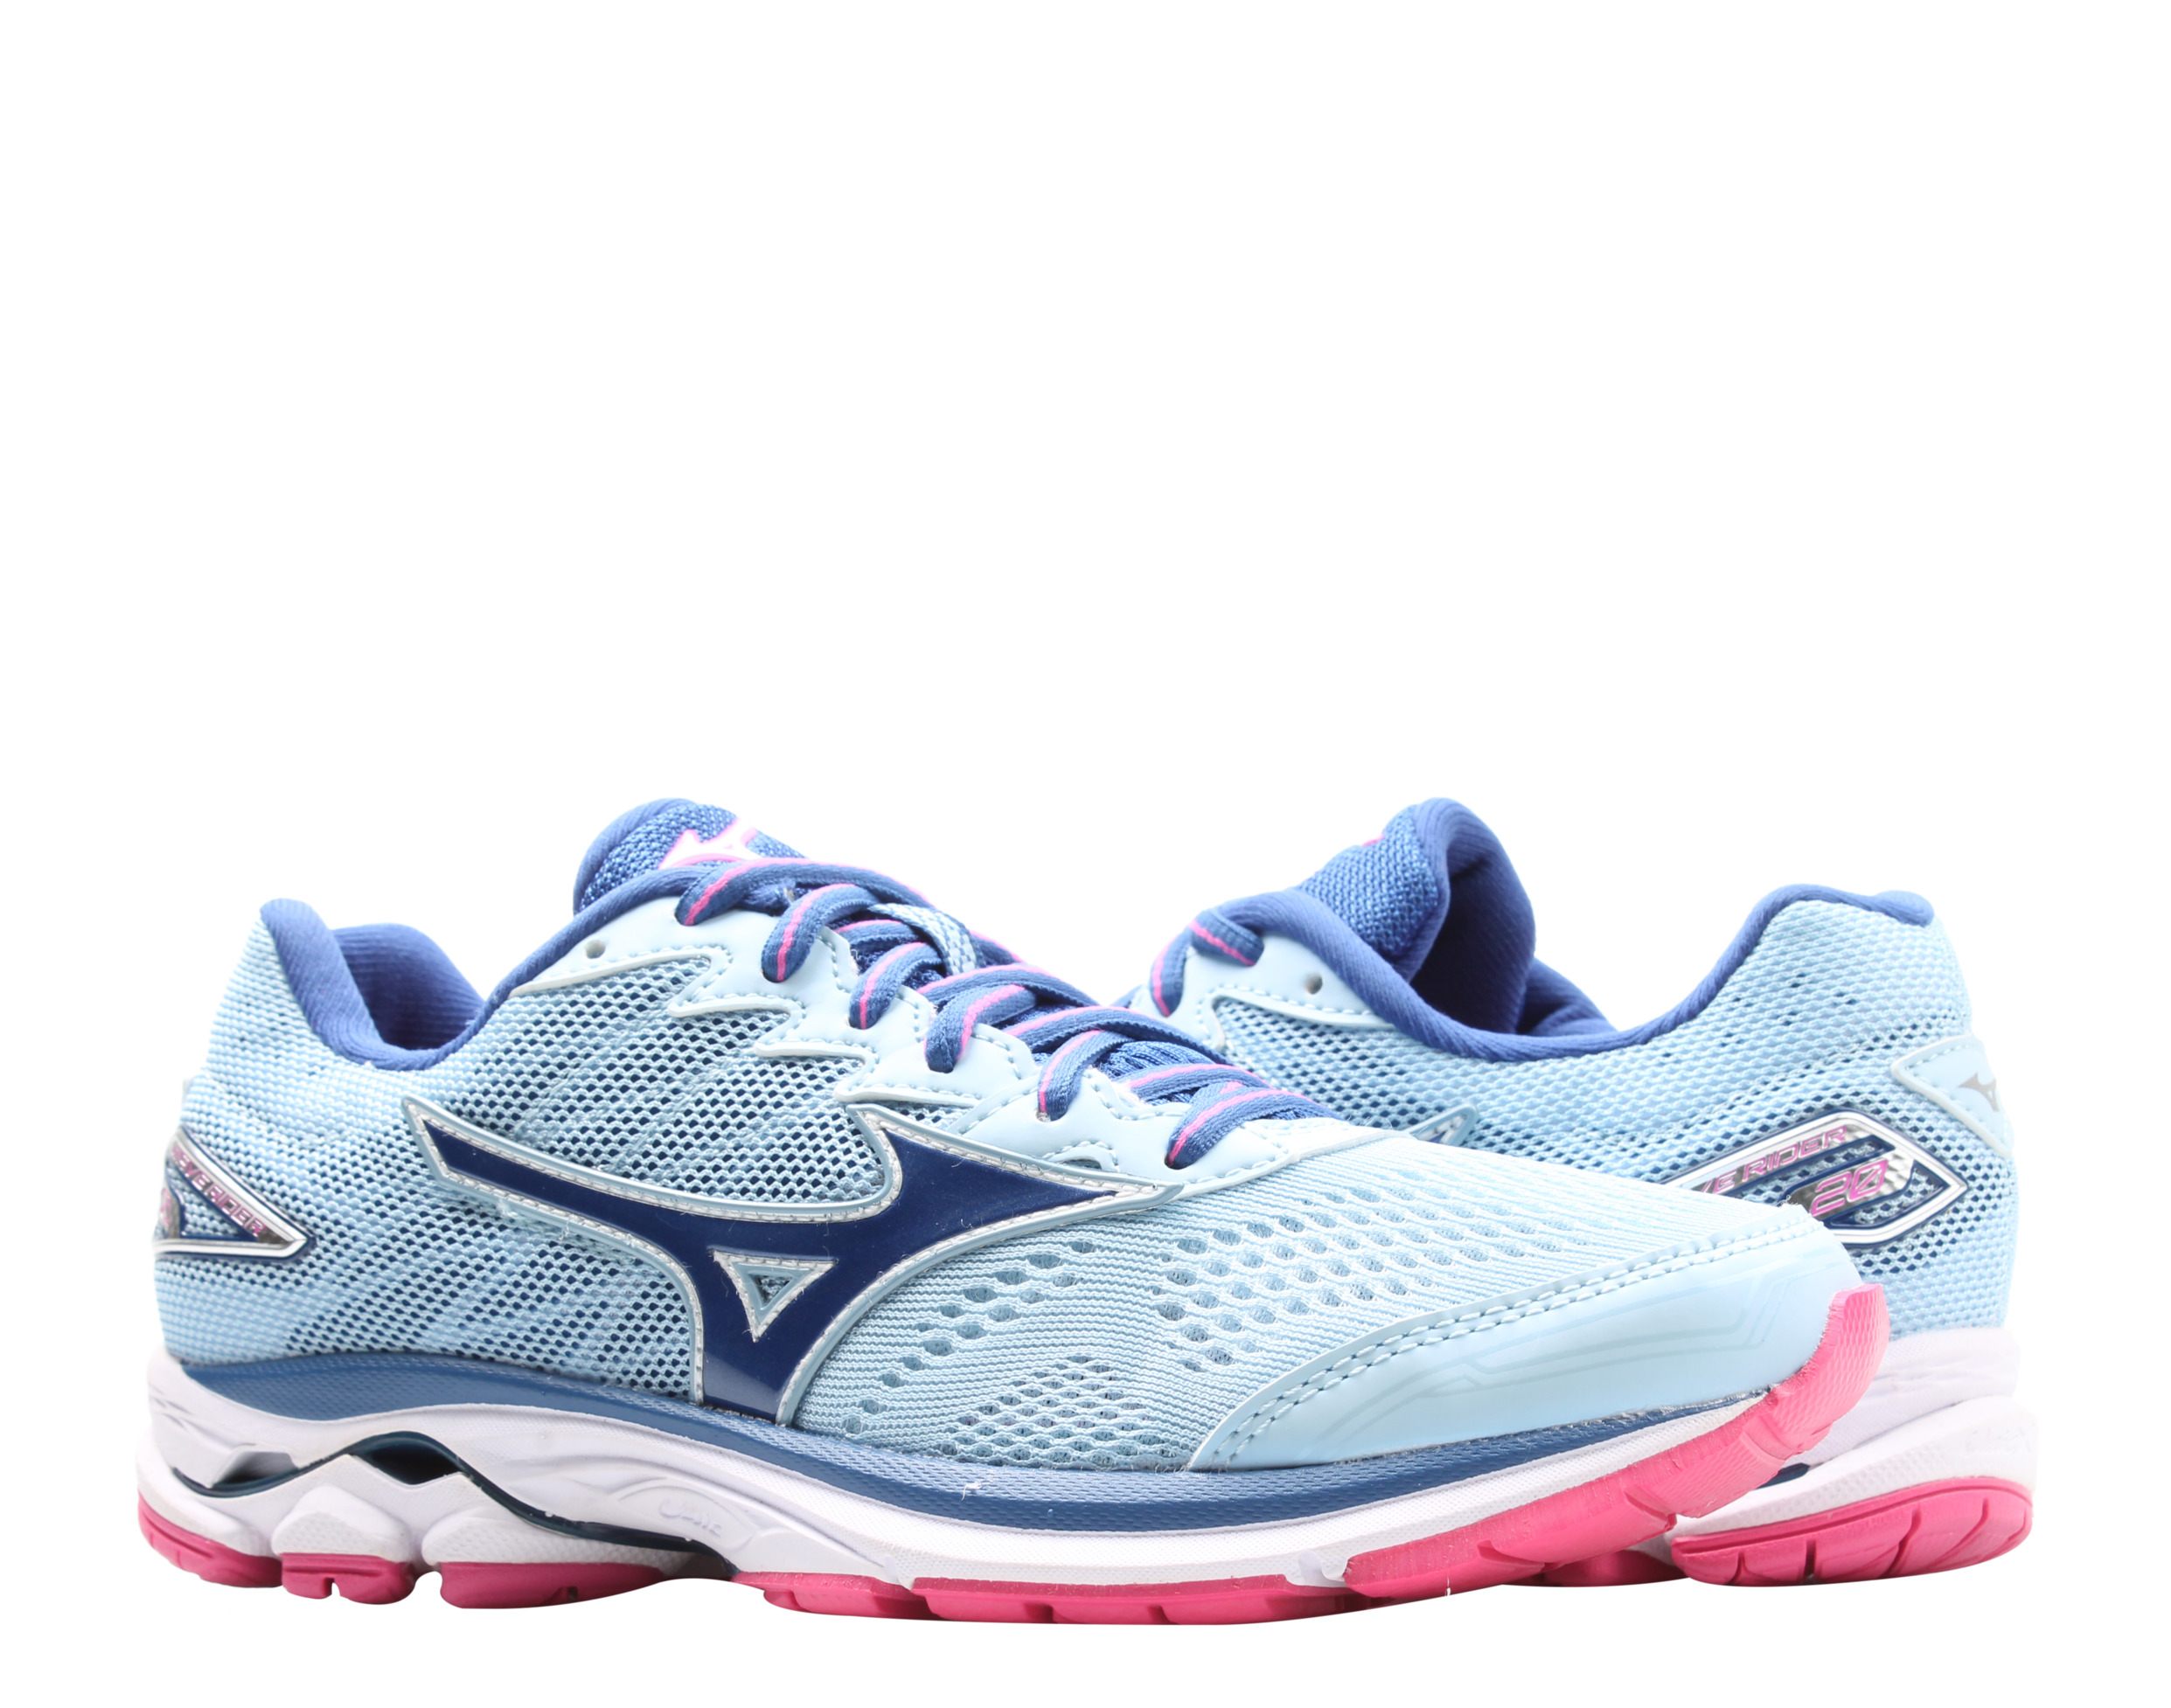 mizuno mens running shoes size 9 youth gold weight medium jeans